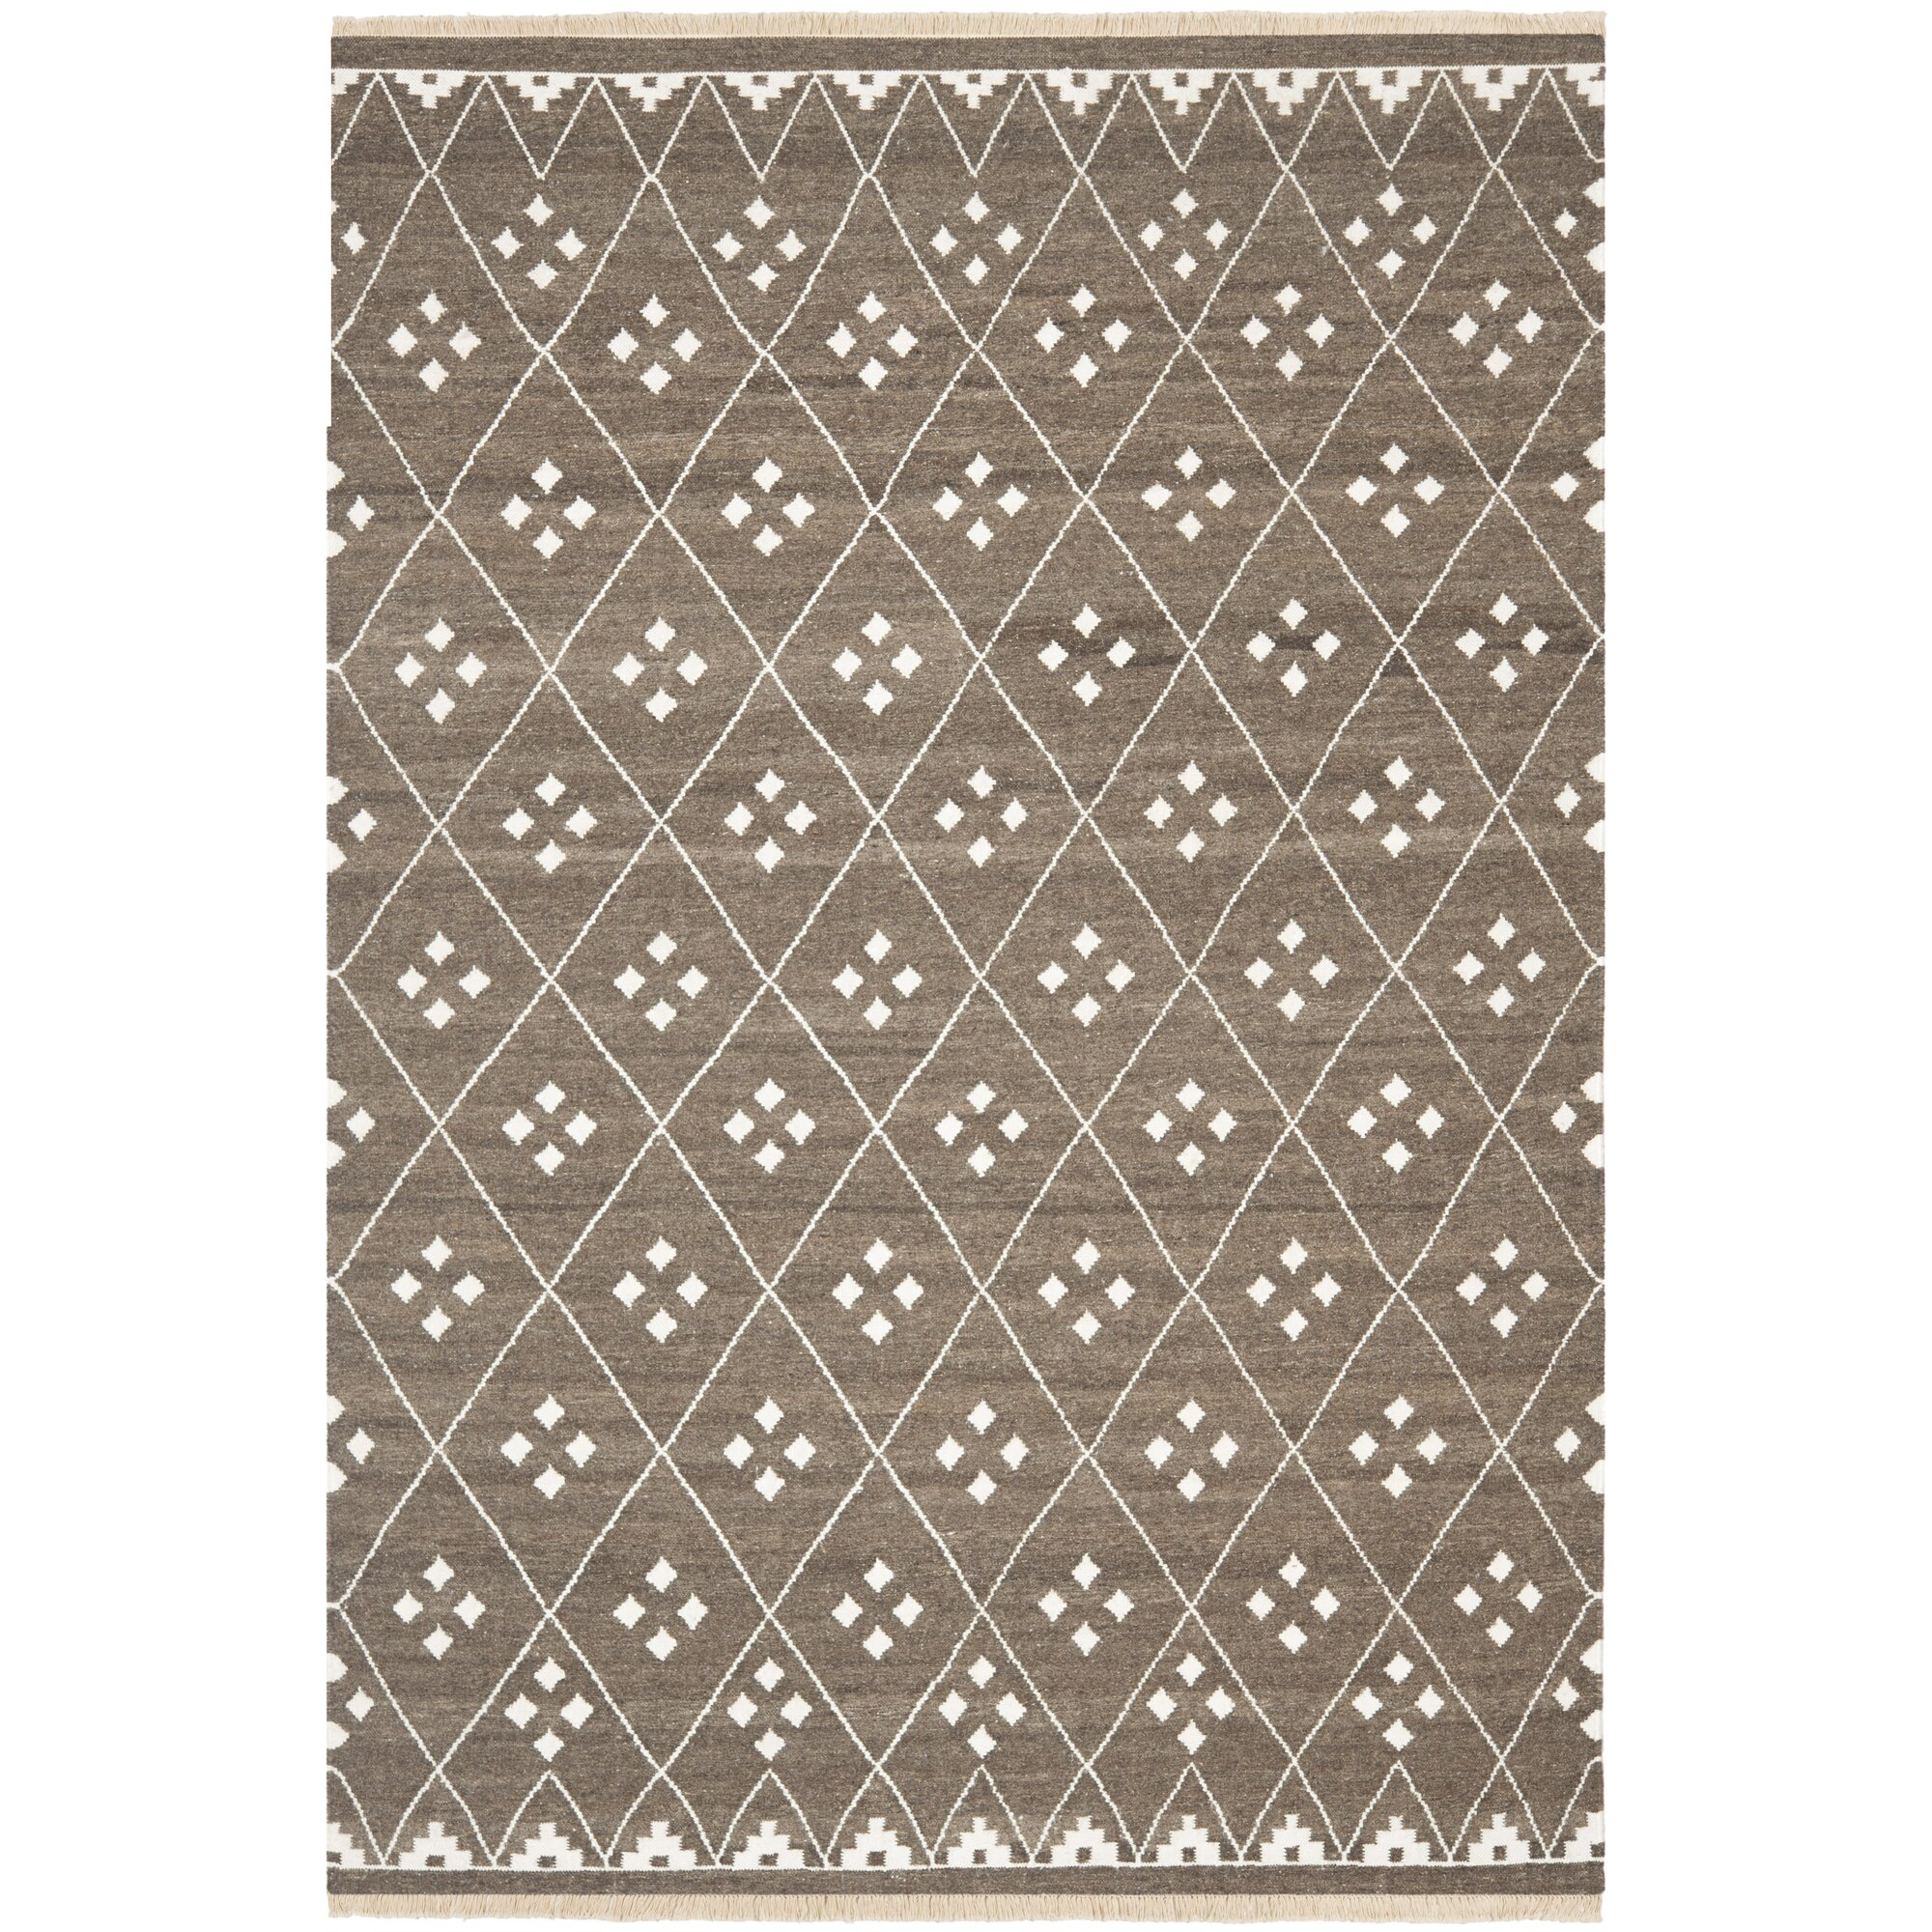 Safavieh Natural Kilim Dhurrie Brown Amp Ivory Area Rug